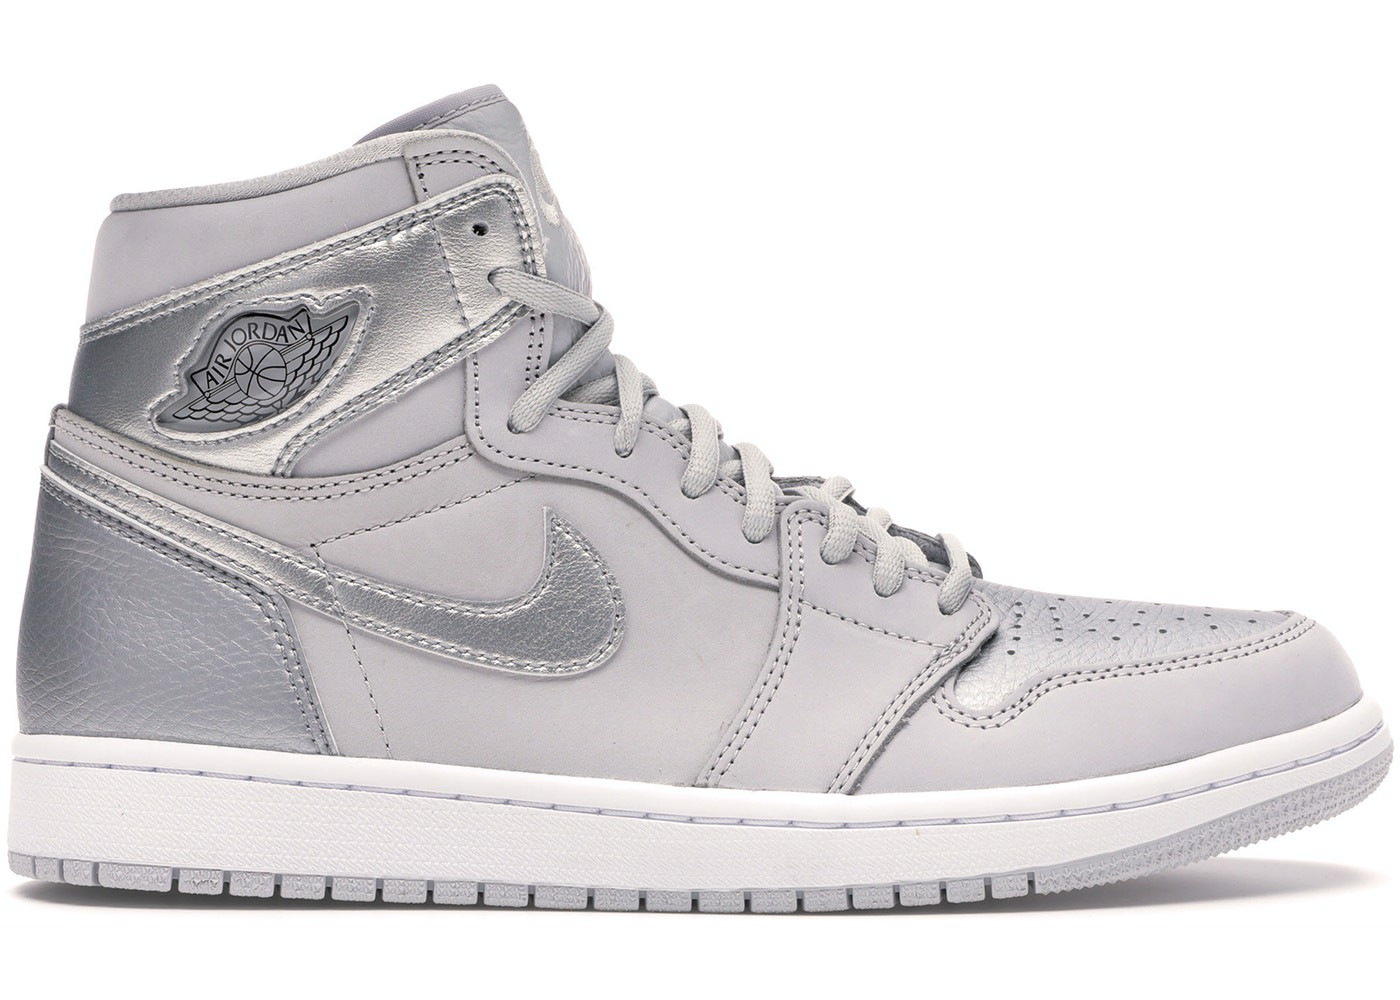 Nike Jordan 1 Retro High CO Japan Neutral Grey (2020) DC1788-029